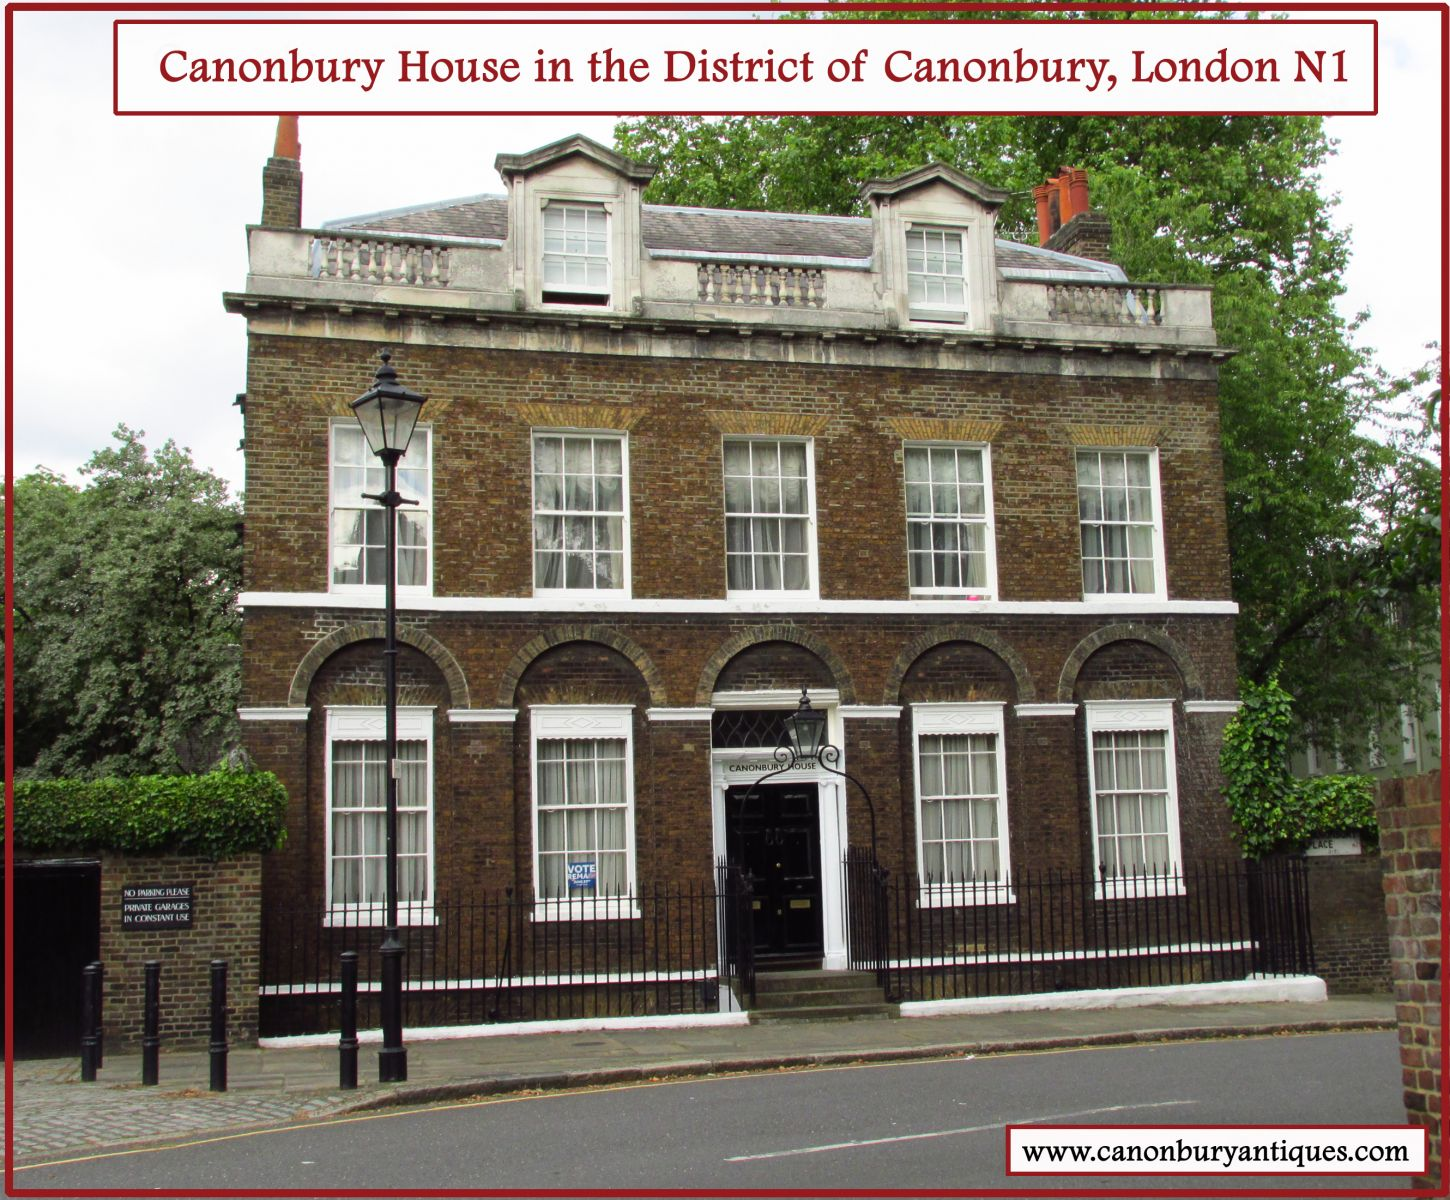 Canonbury House, Canonbury Pl, London N1 - classic period London town house